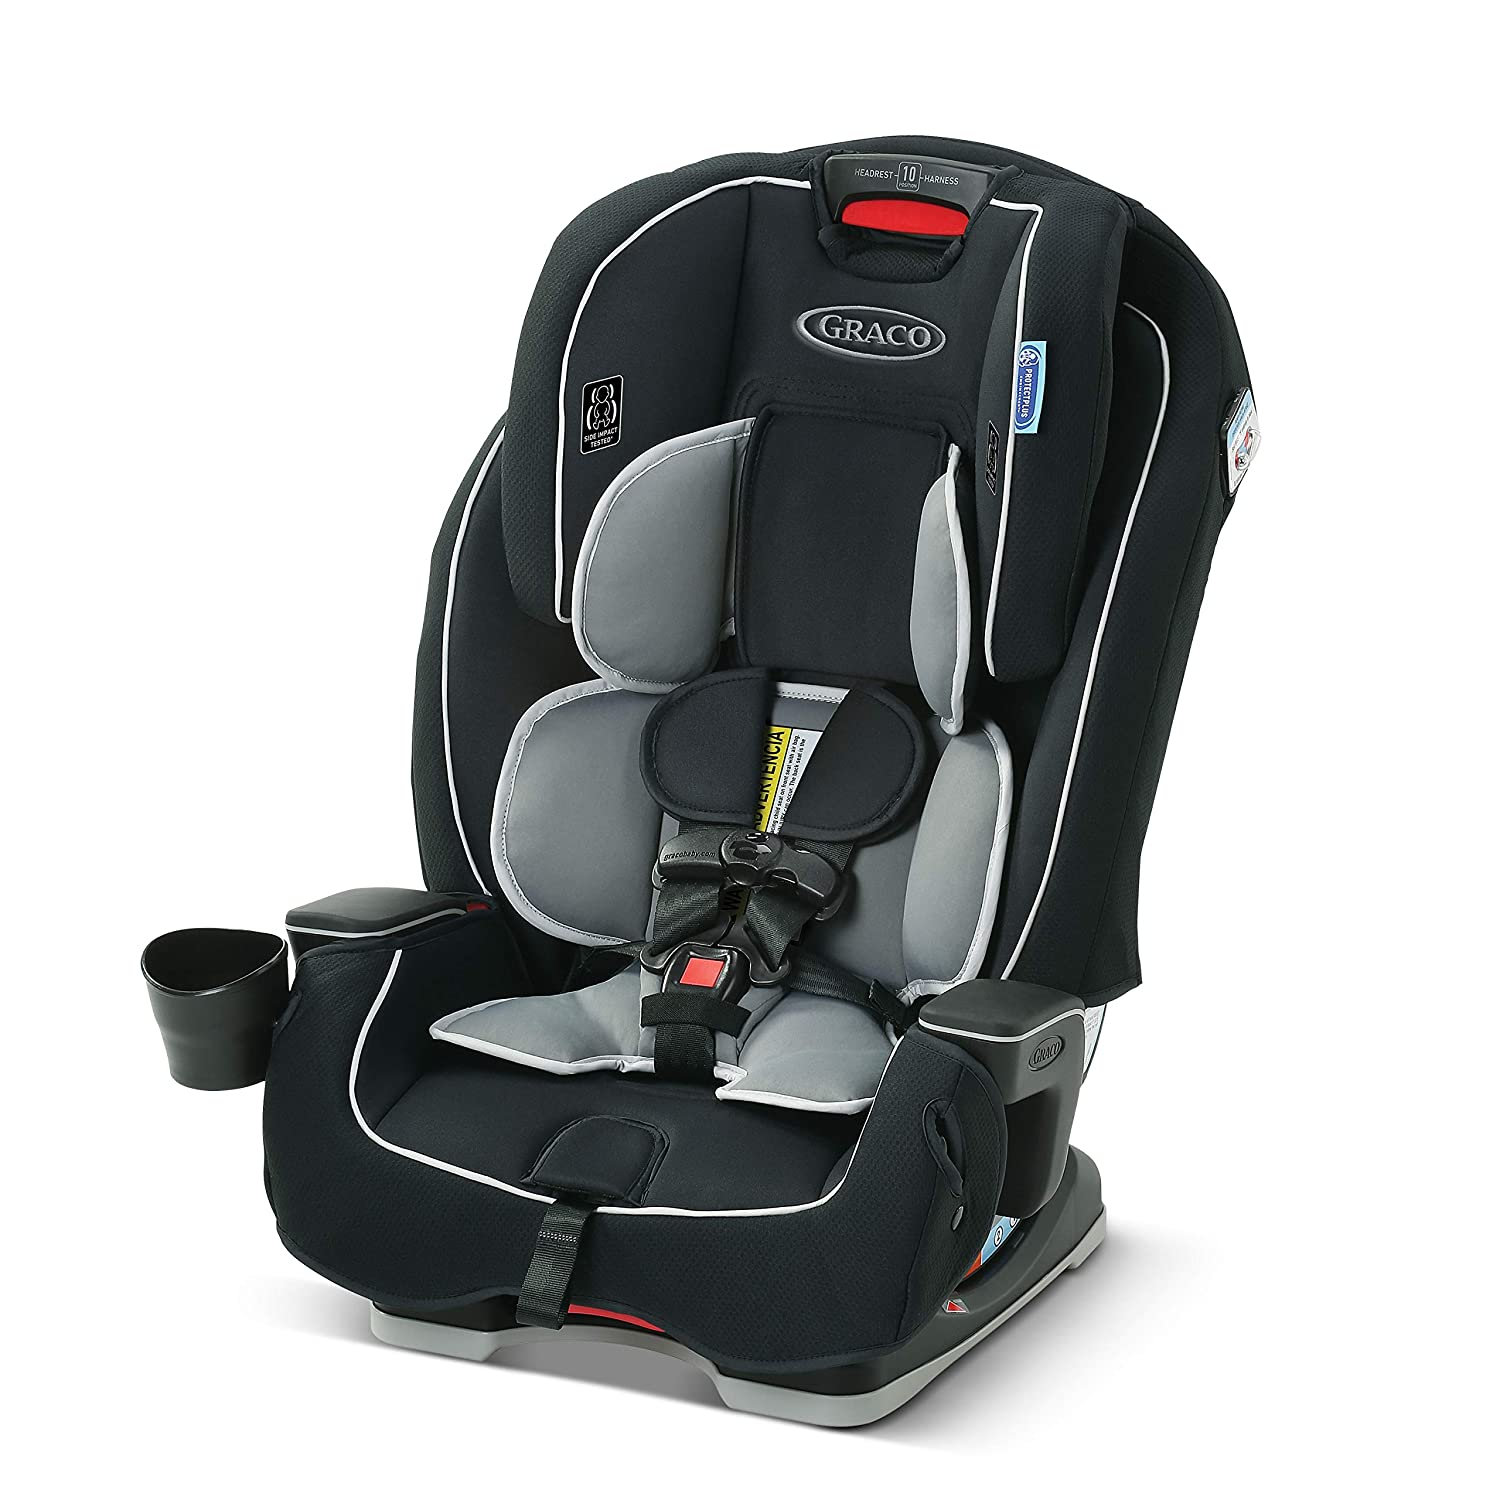 Graco Landmark 3 in 1 Car Seat, Infant